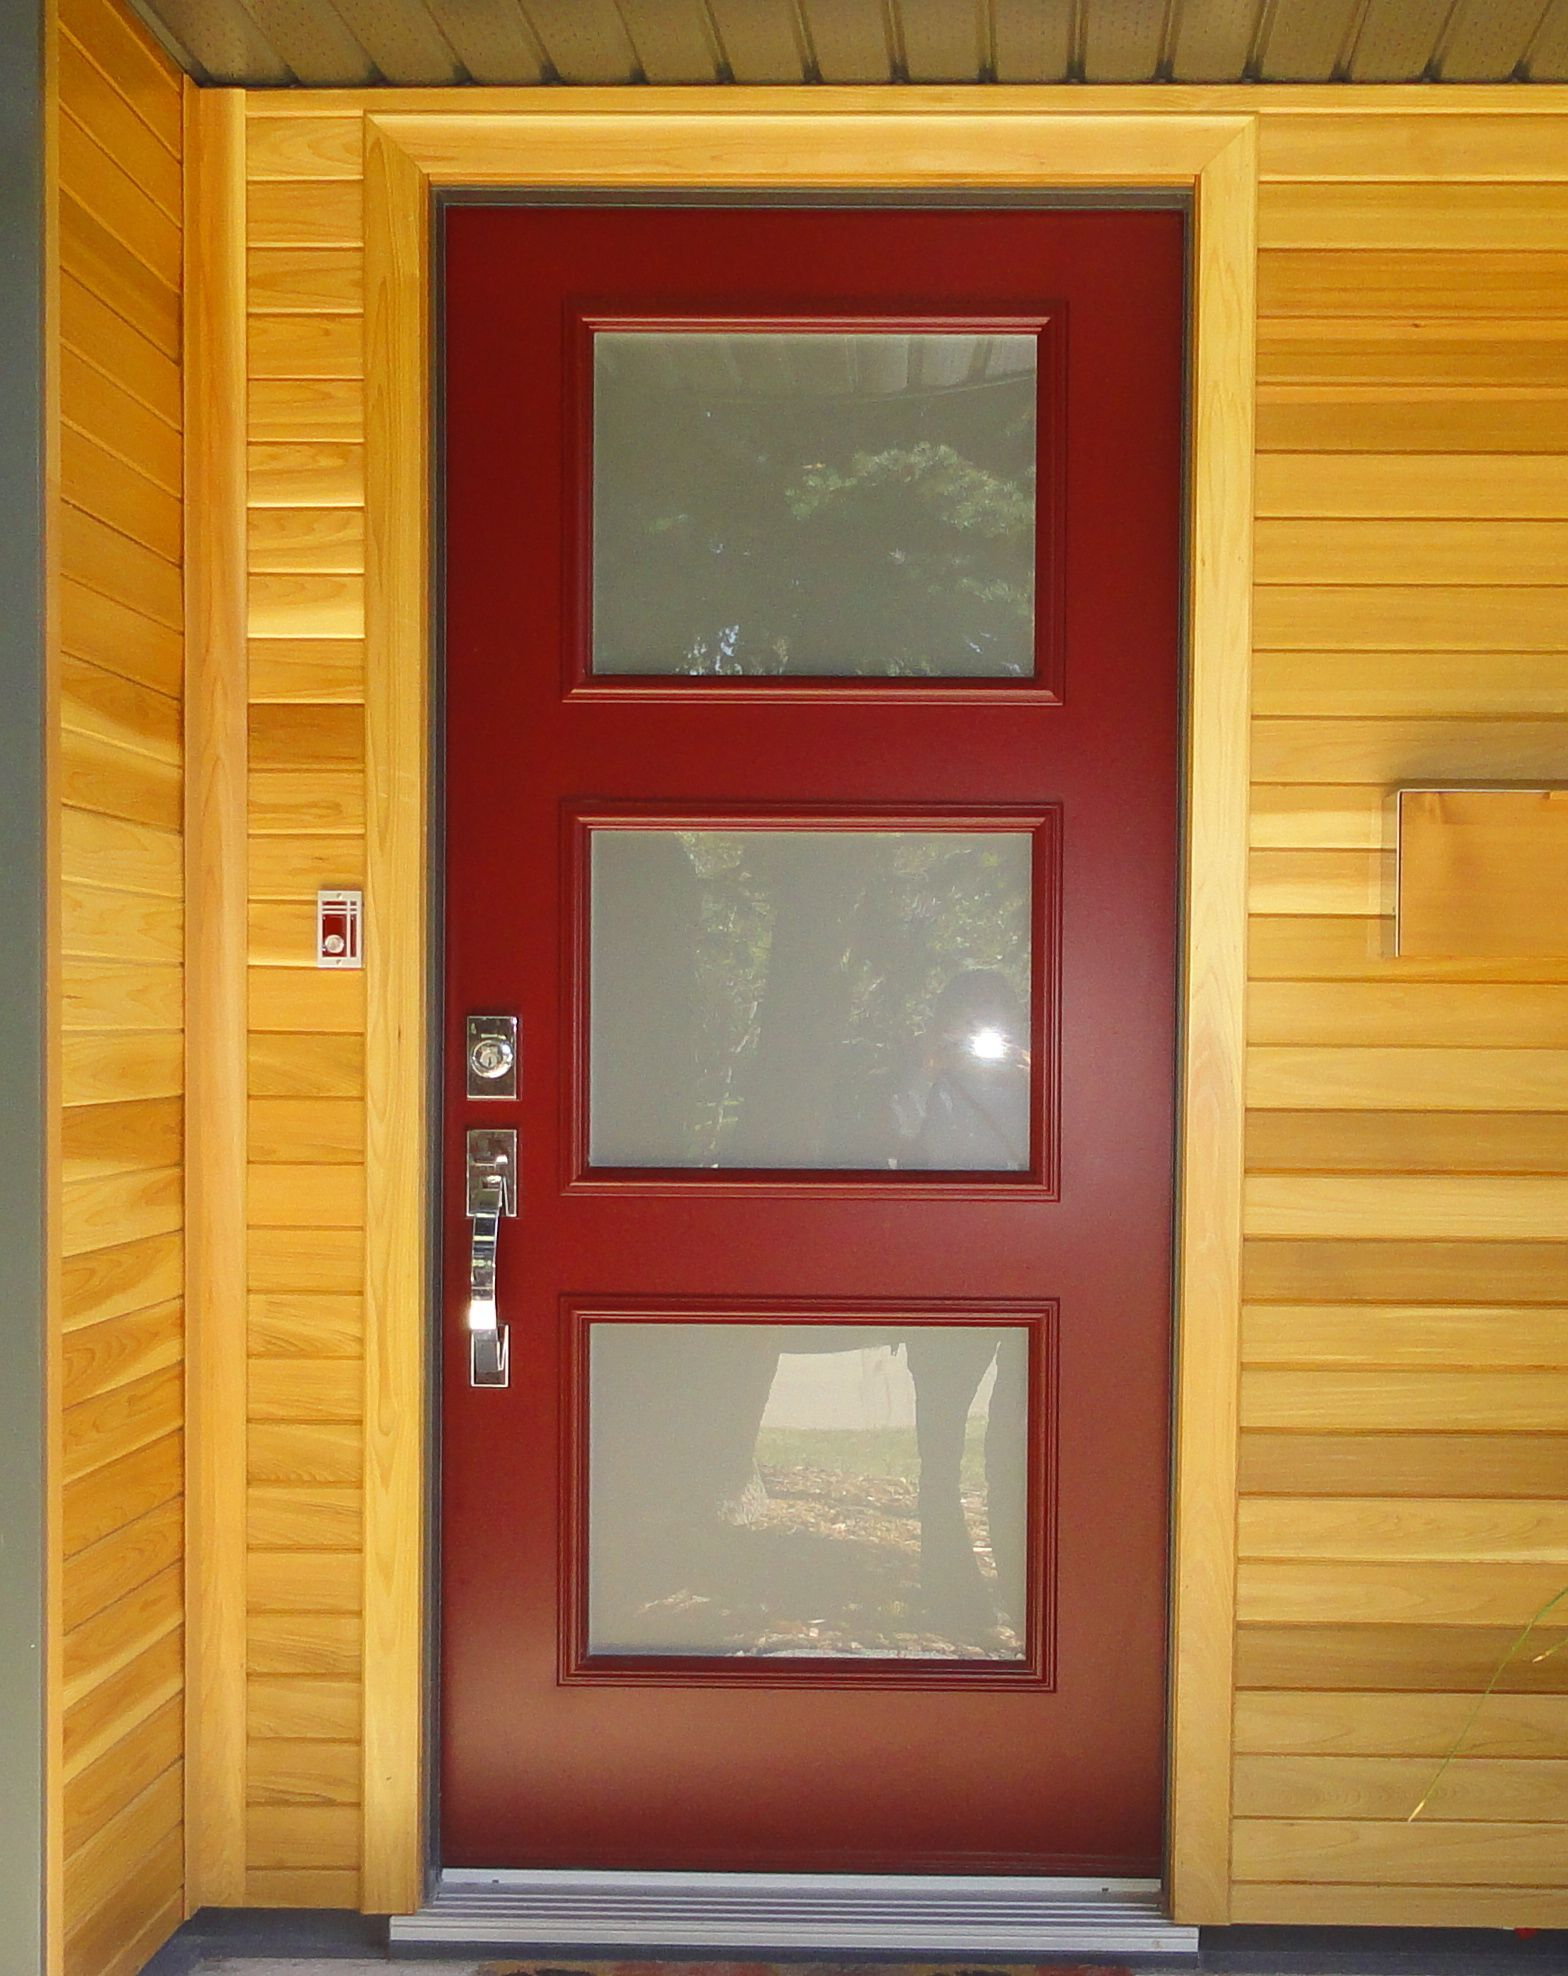 Single Entry Doors acid etched glass insertportatec, portatec dark red coloured